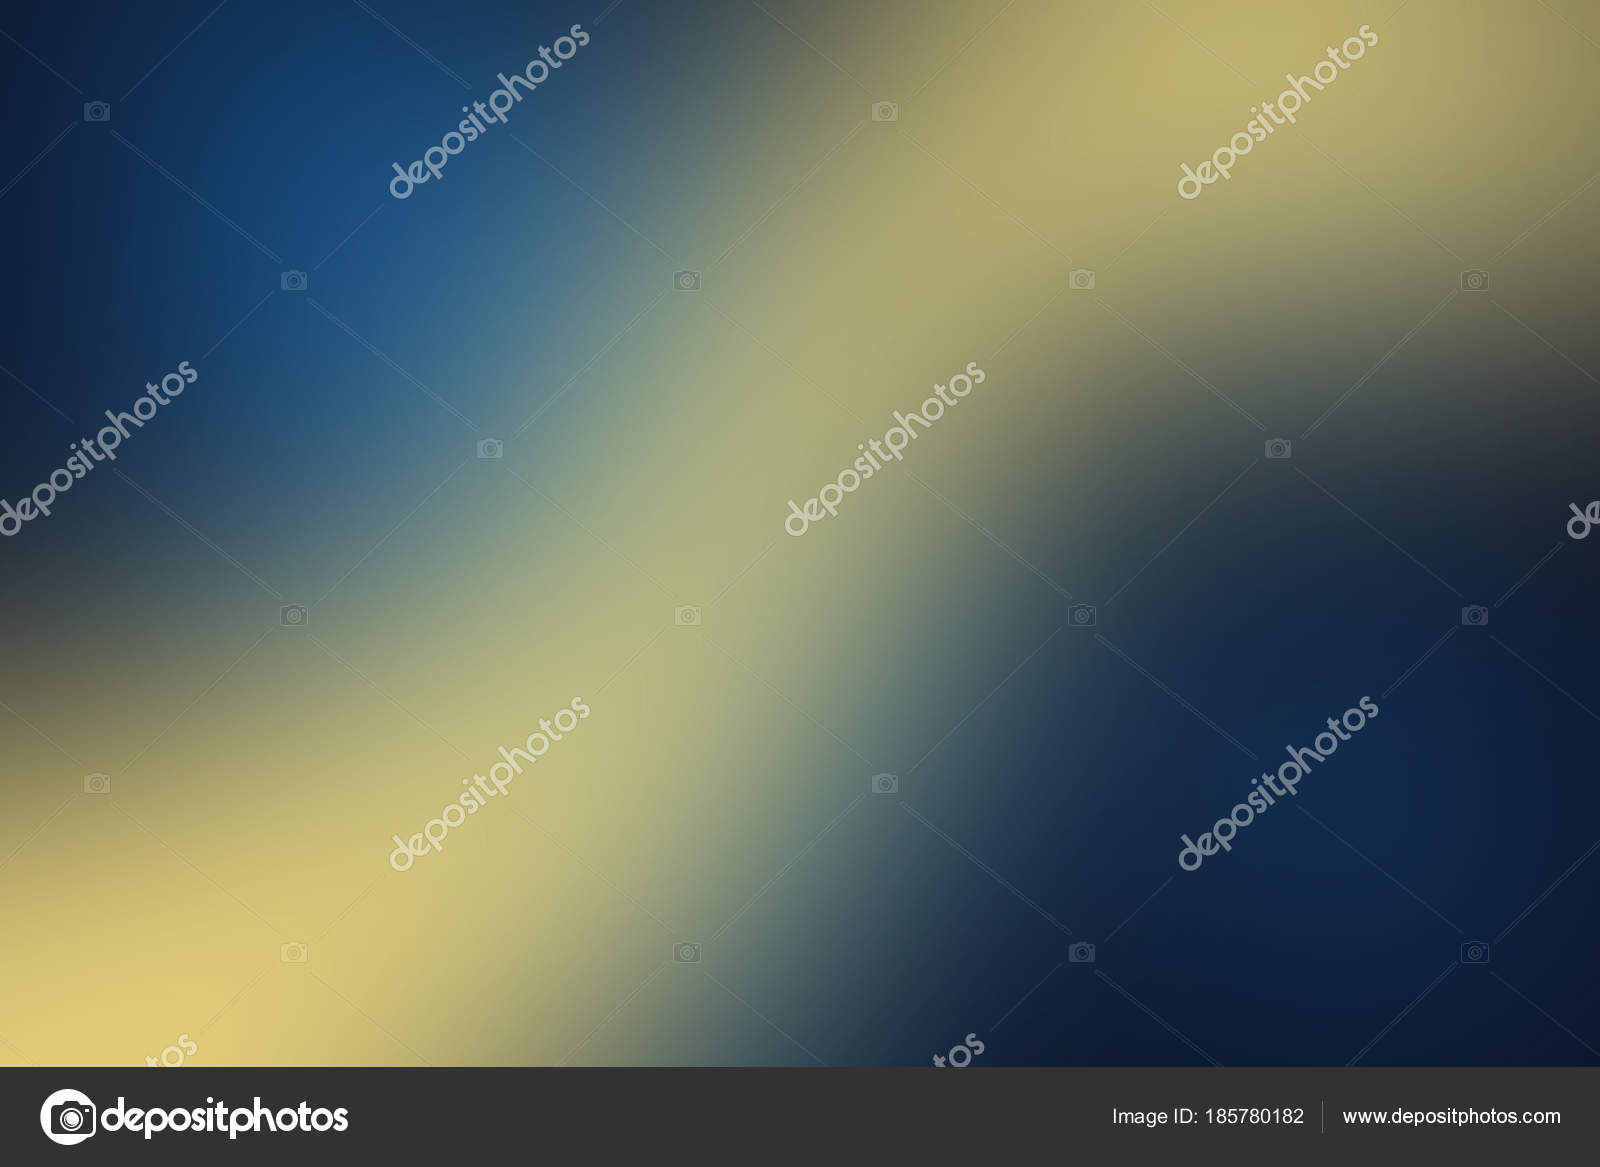 Blurred Blue And Yellow Color Background Abstract Gradient Desktop Wallpaper Design For Your Content Photo By Ascom73